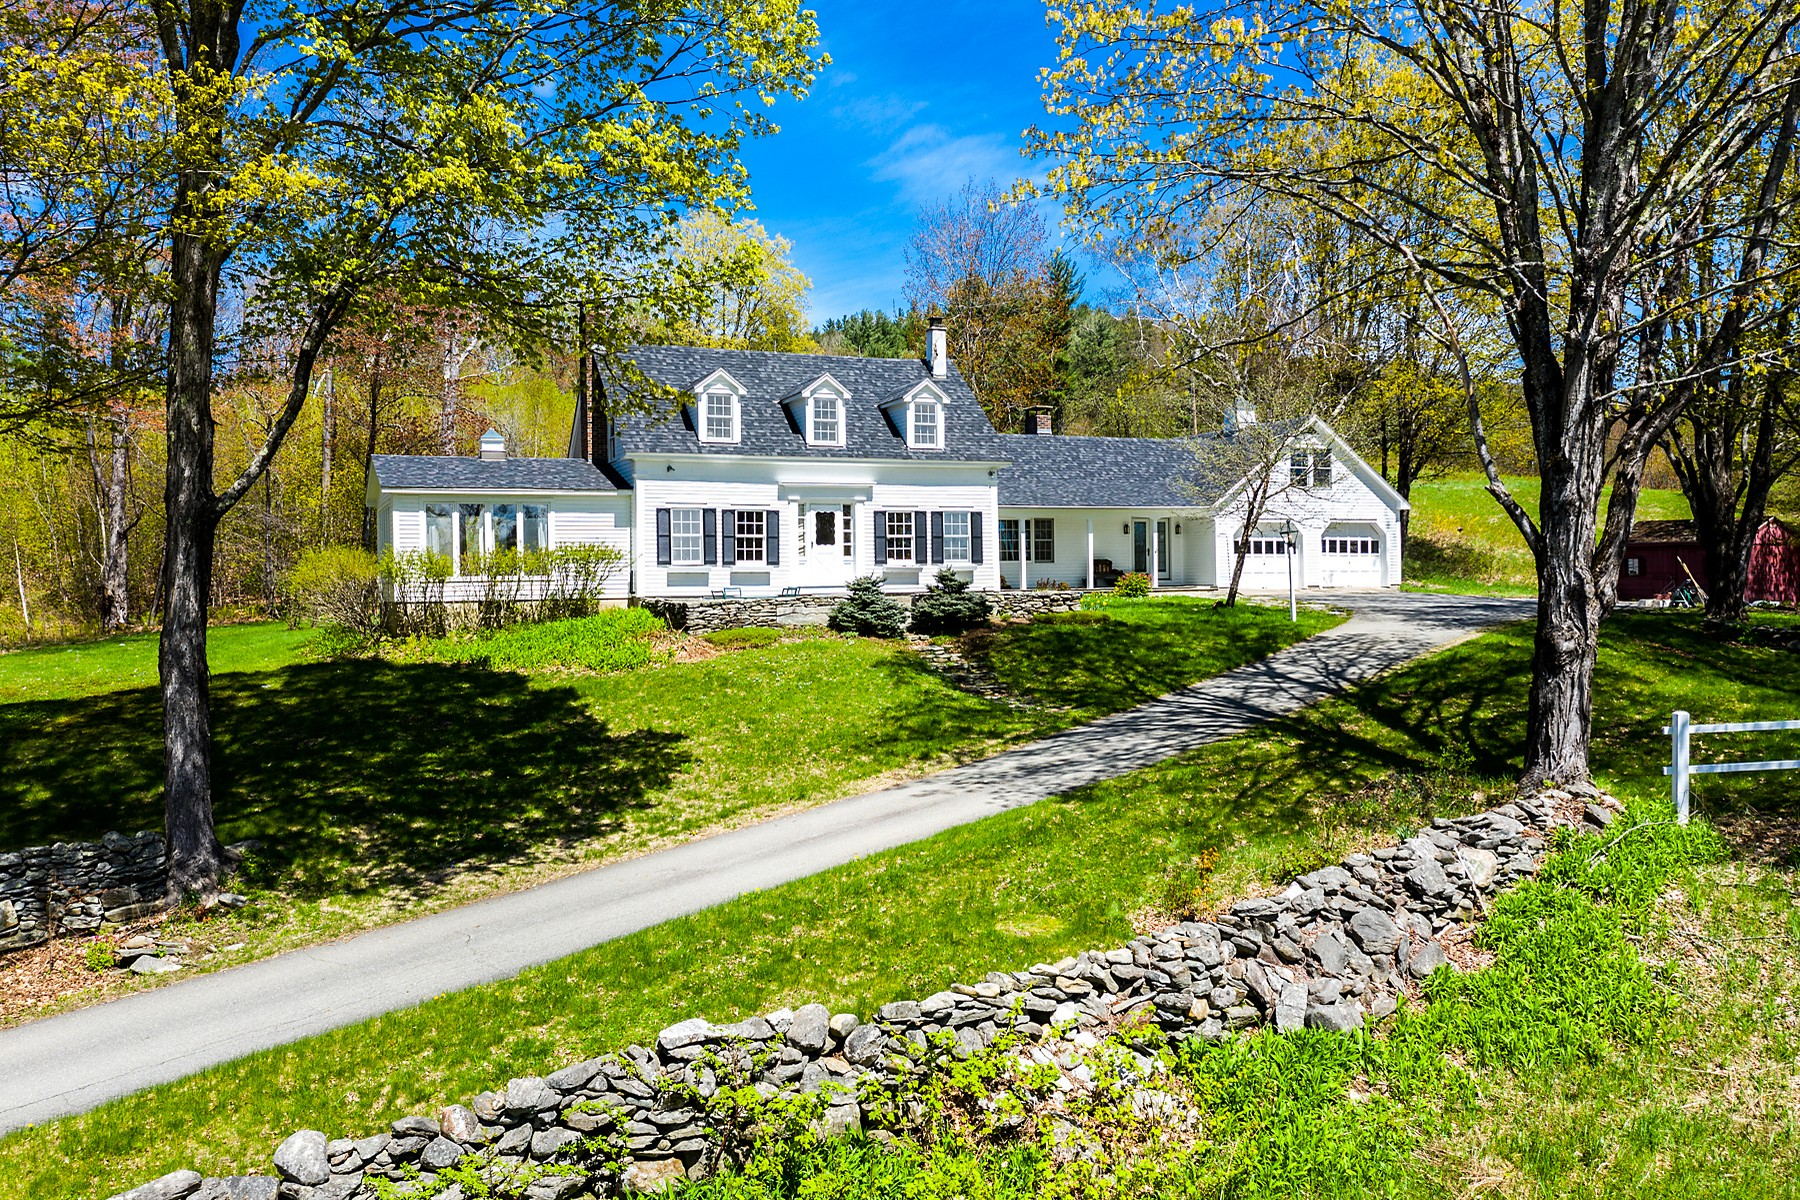 Single Family Homes for Sale at 336 Gale Road, Townshend 336 Gale Rd Townshend, Vermont 05353 United States